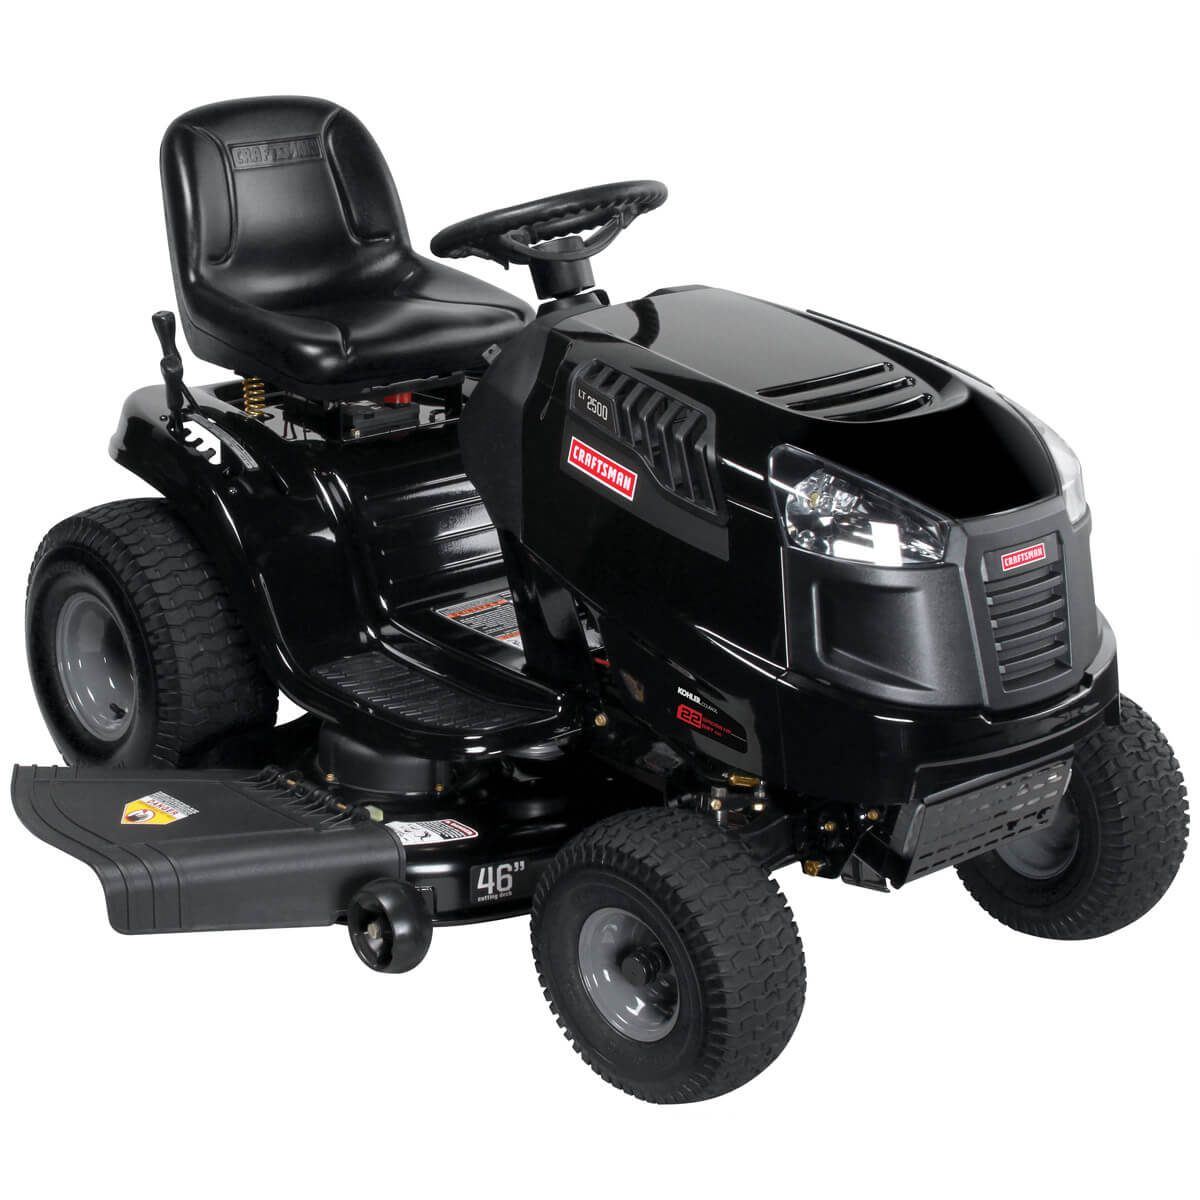 Hydrostatic Transmission Tractor : The best features to look for when buying a lawn tractor